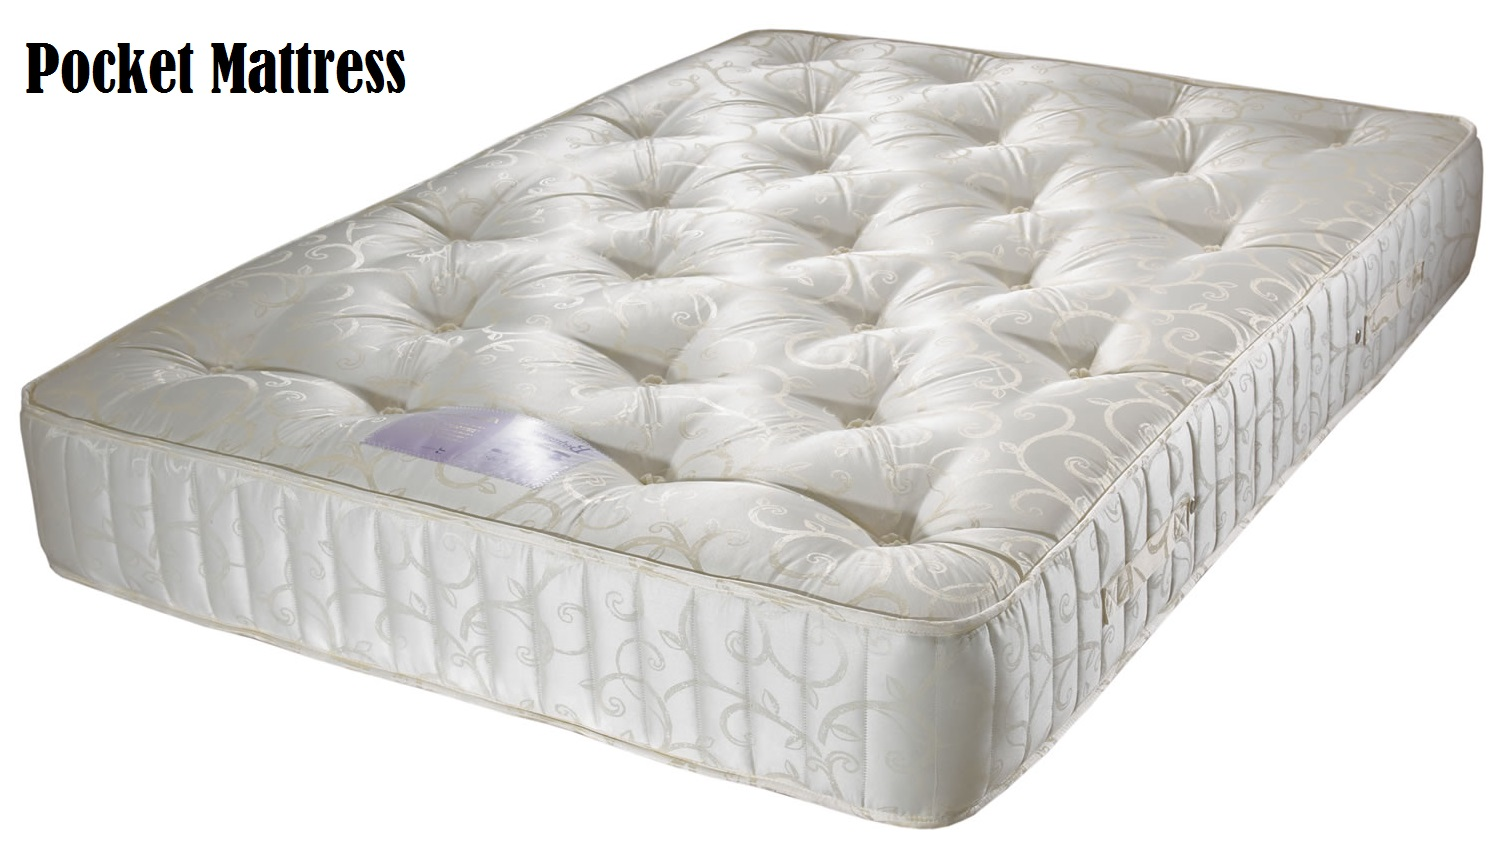 firm cm protector foam mattress art en mattresses toppers ikea ngsvide white products moshult gb